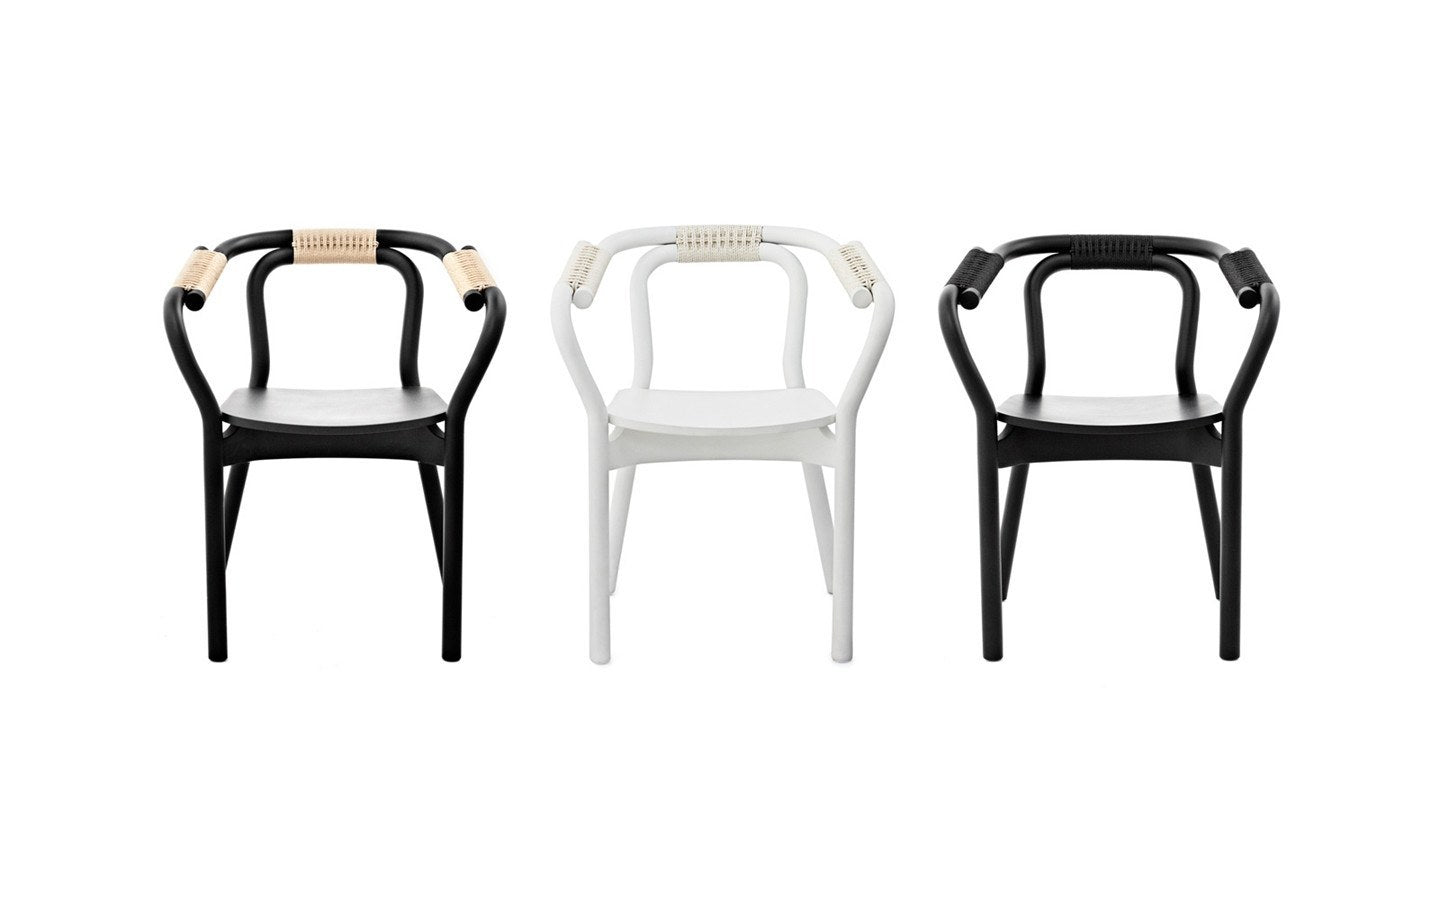 NORMANN COPENHAGEN KNOT CHAIR - Eclectic Cool  - 4